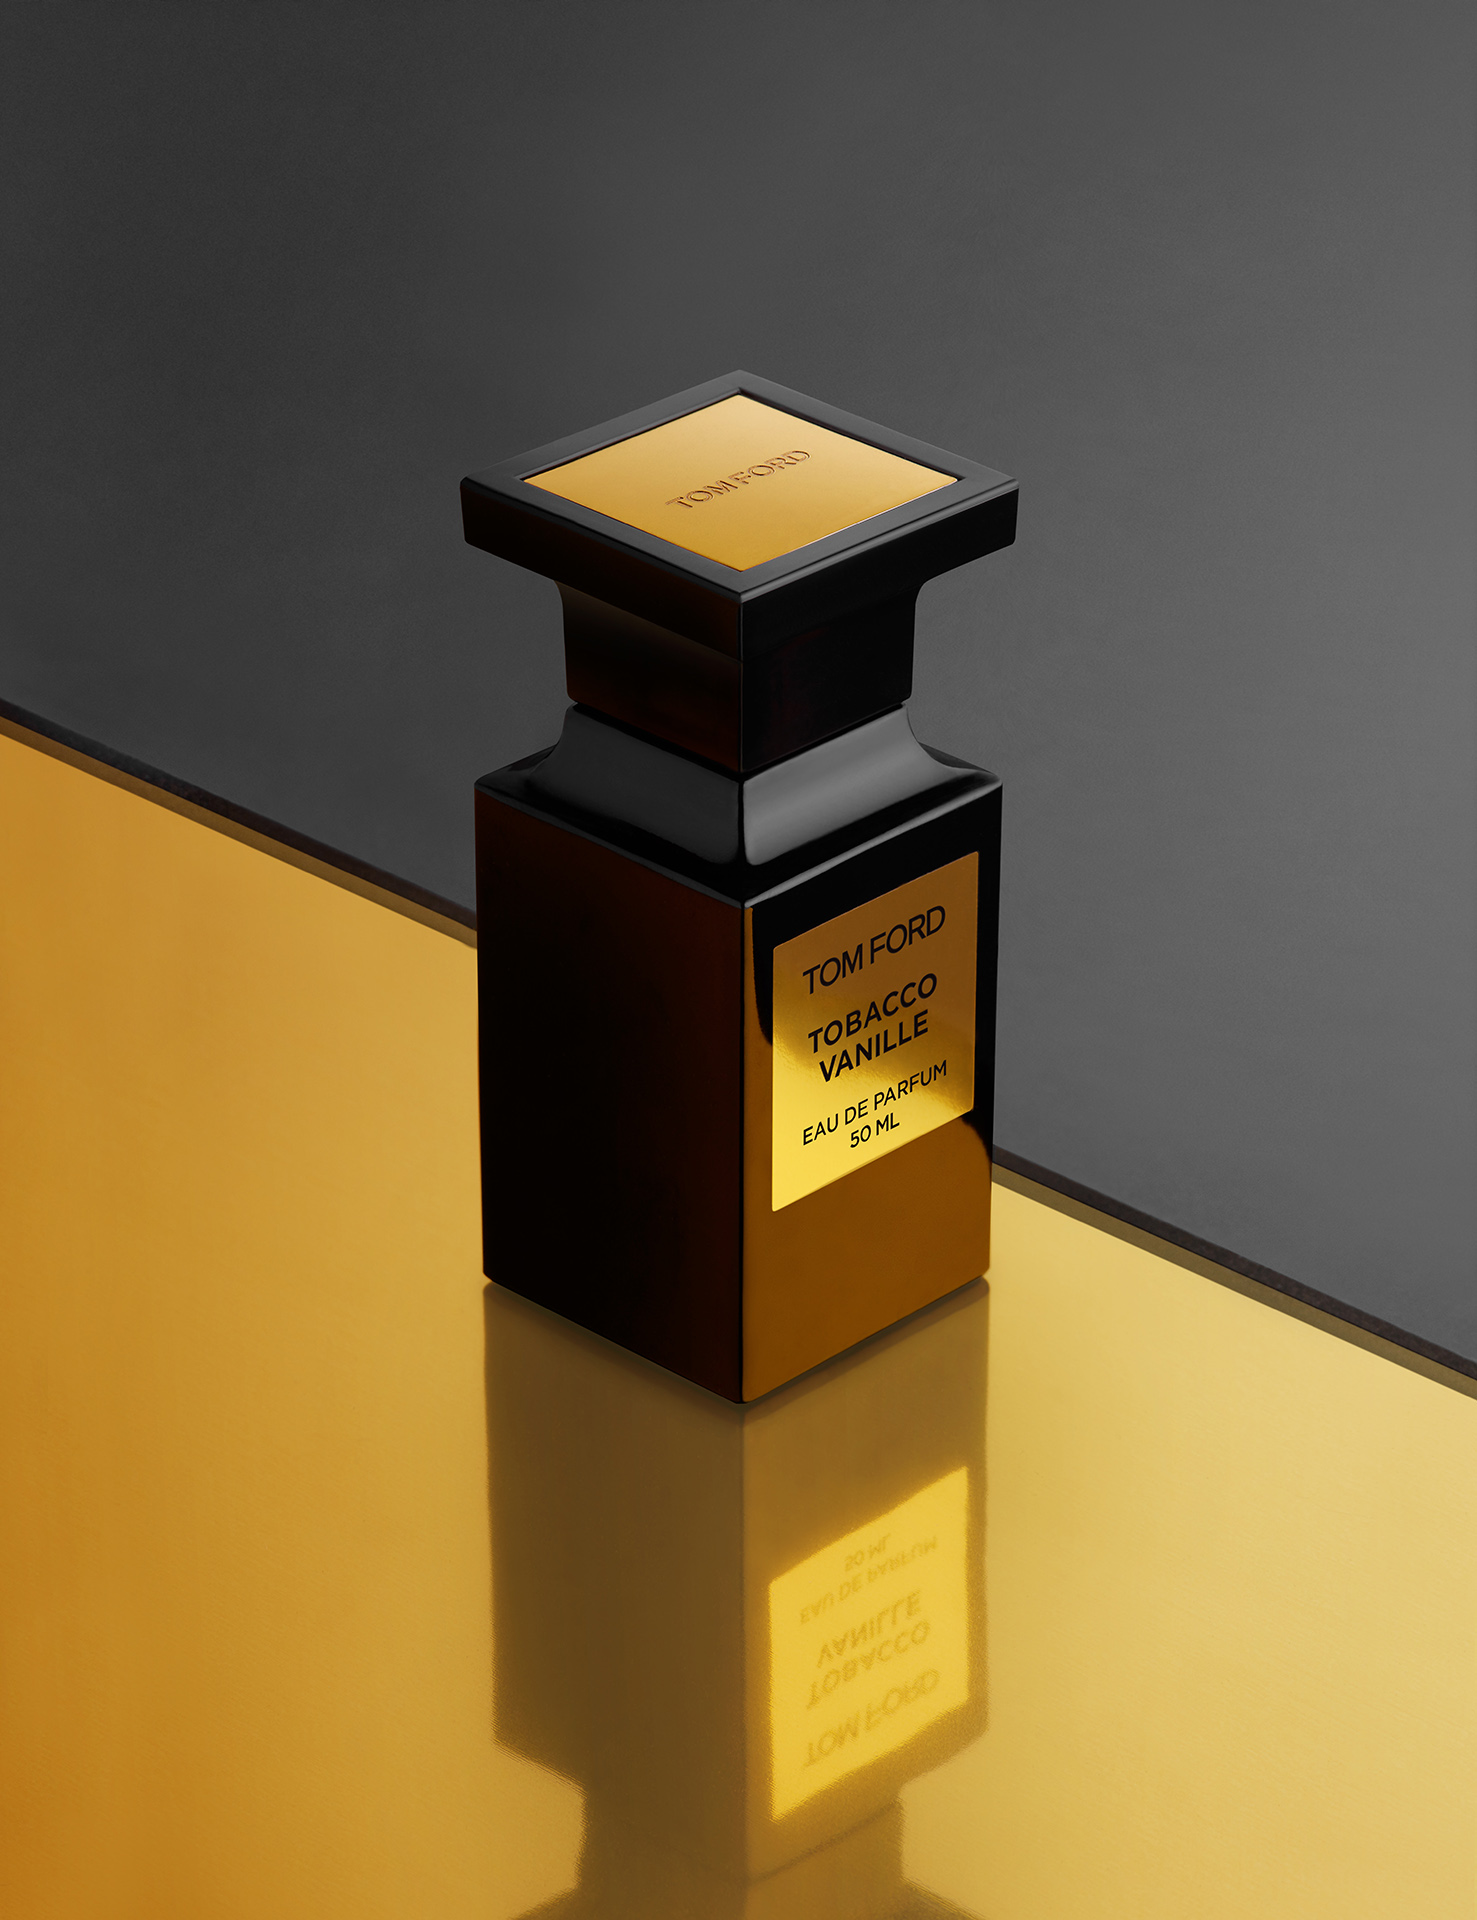 tom-ford-fragrance-perfume-tobacco-vanille-eau-de-parfum-still-life-photography.jpg